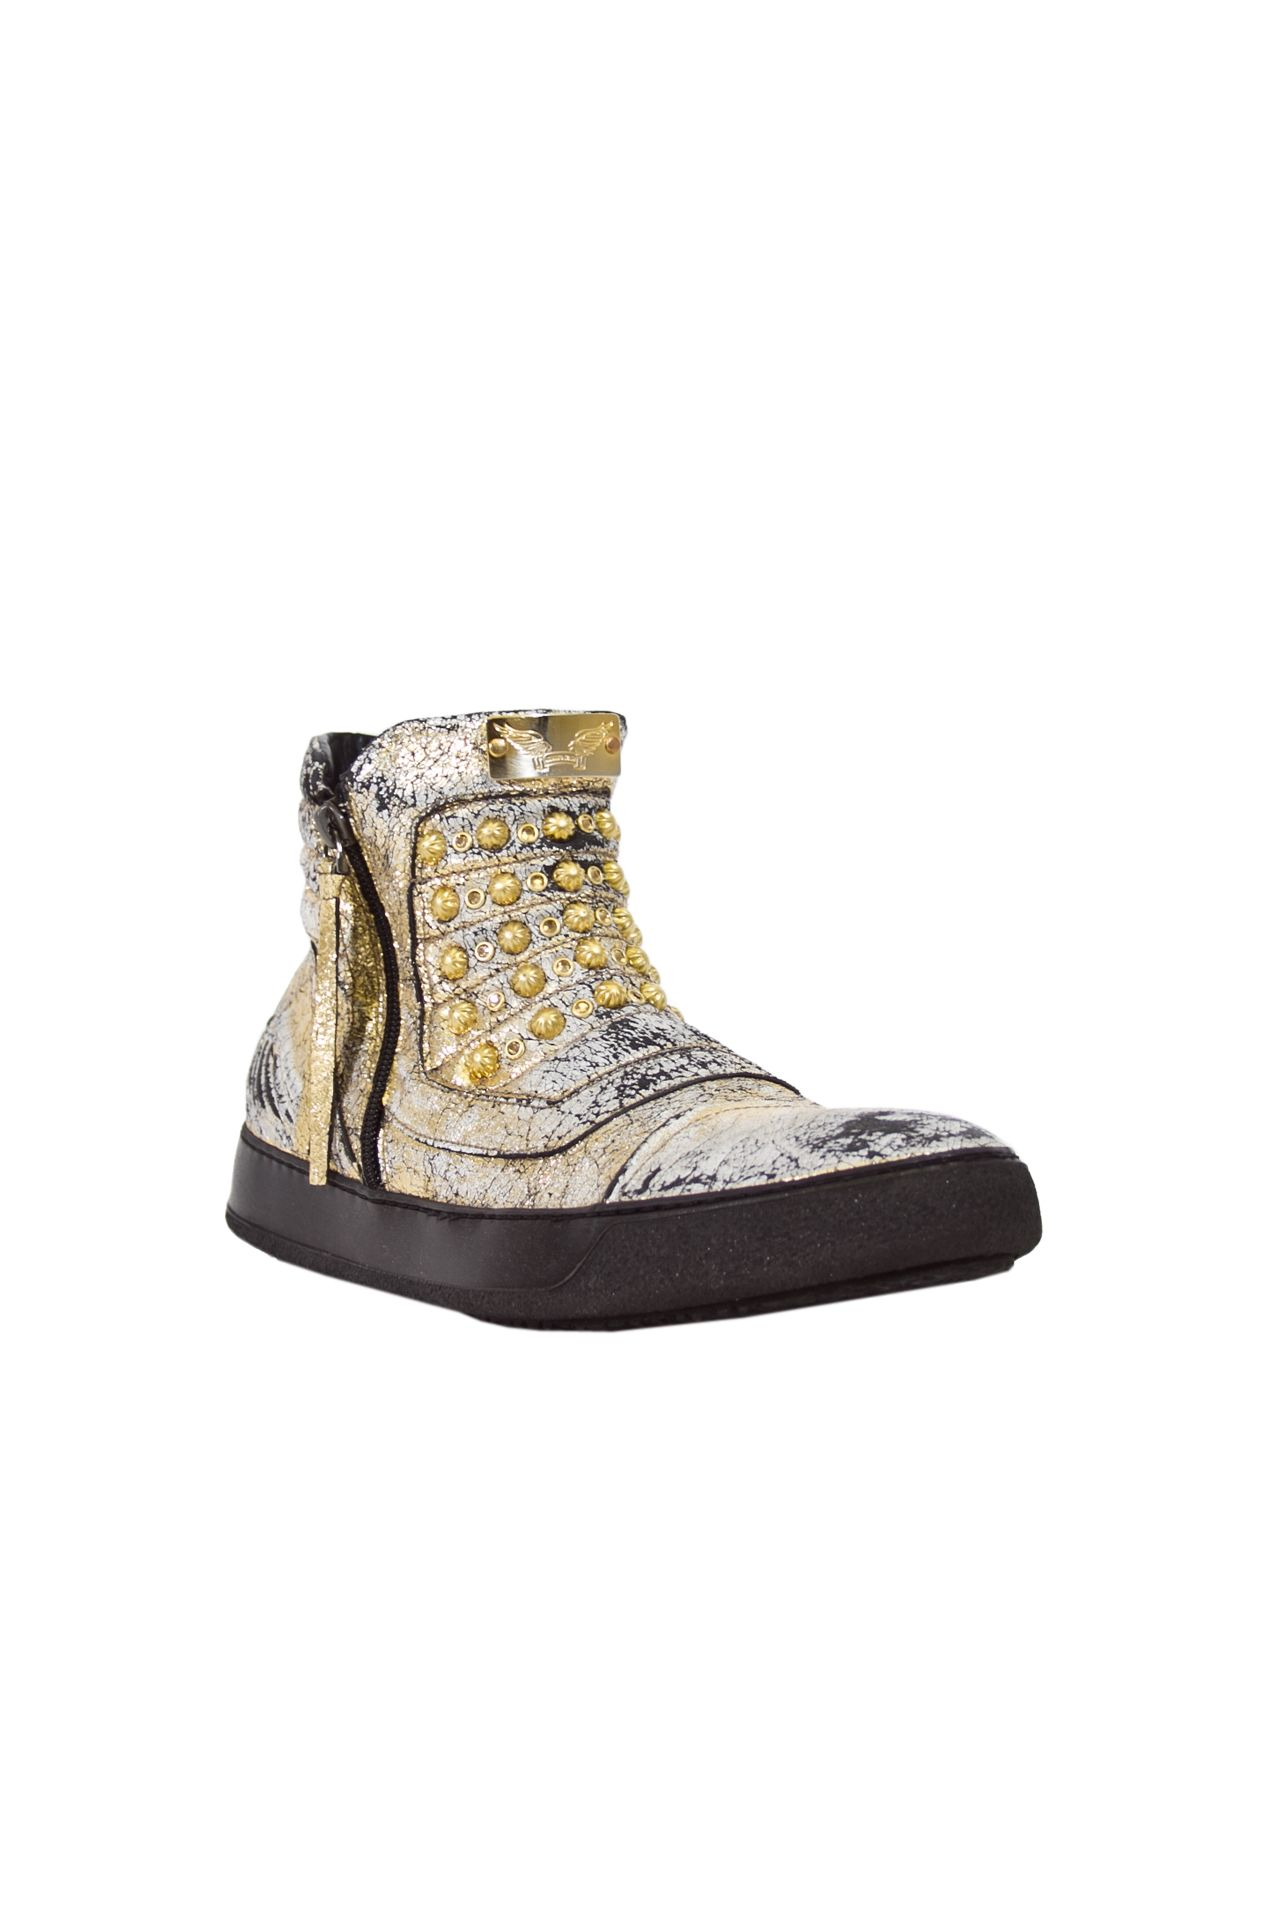 MID TOP CRACKLE GOLD STUDDED